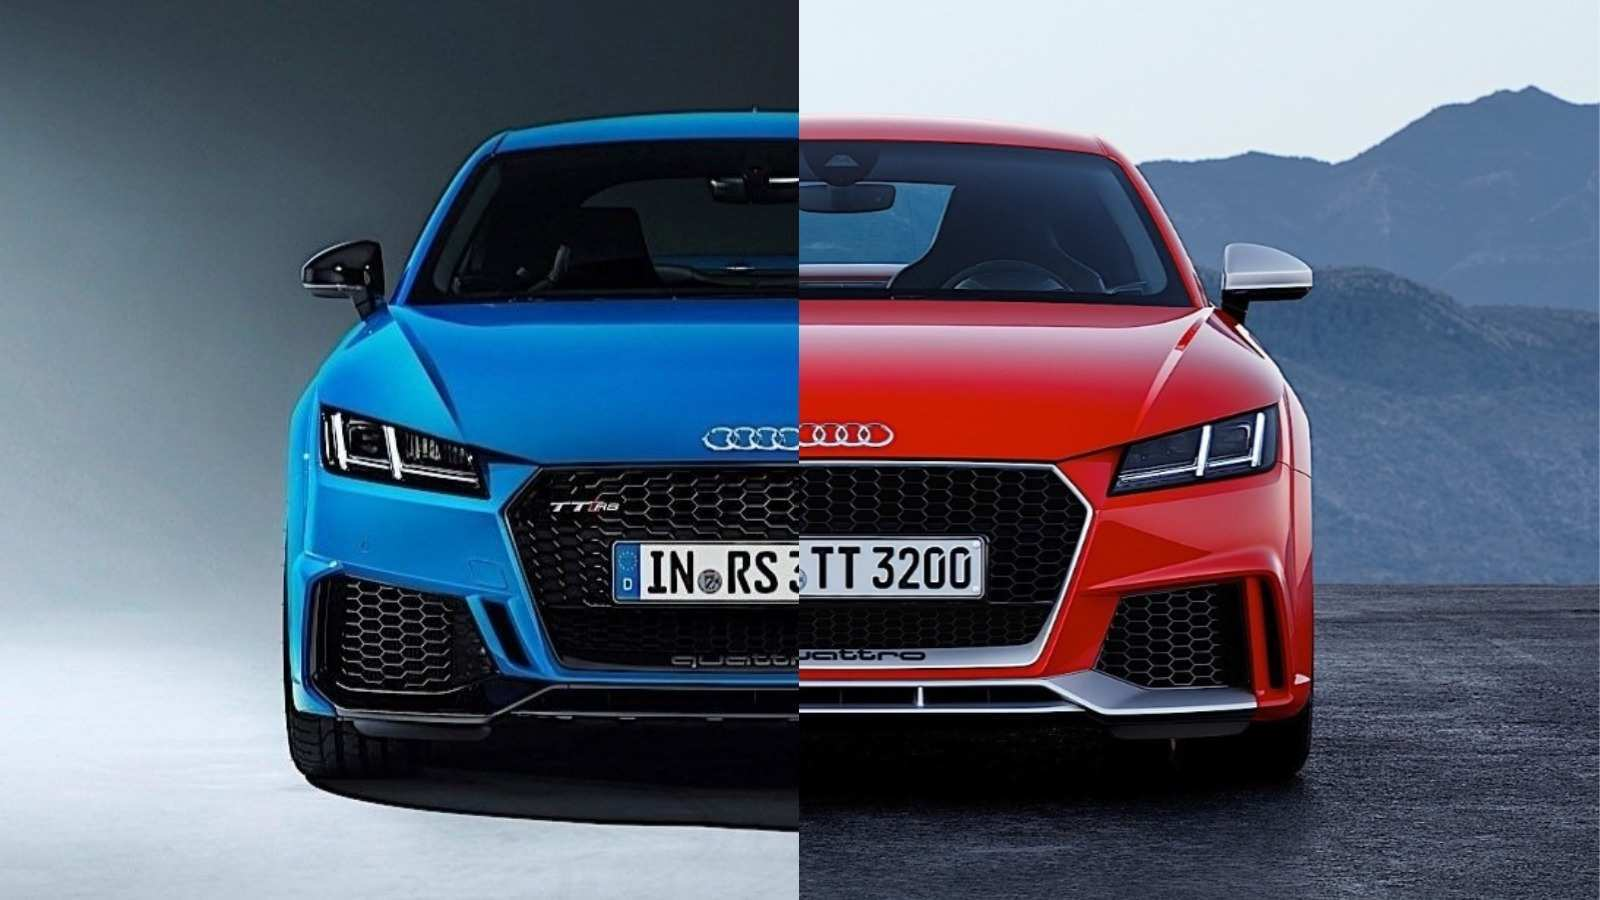 82 All New Audi Tt Coupe 2020 Engine with Audi Tt Coupe 2020